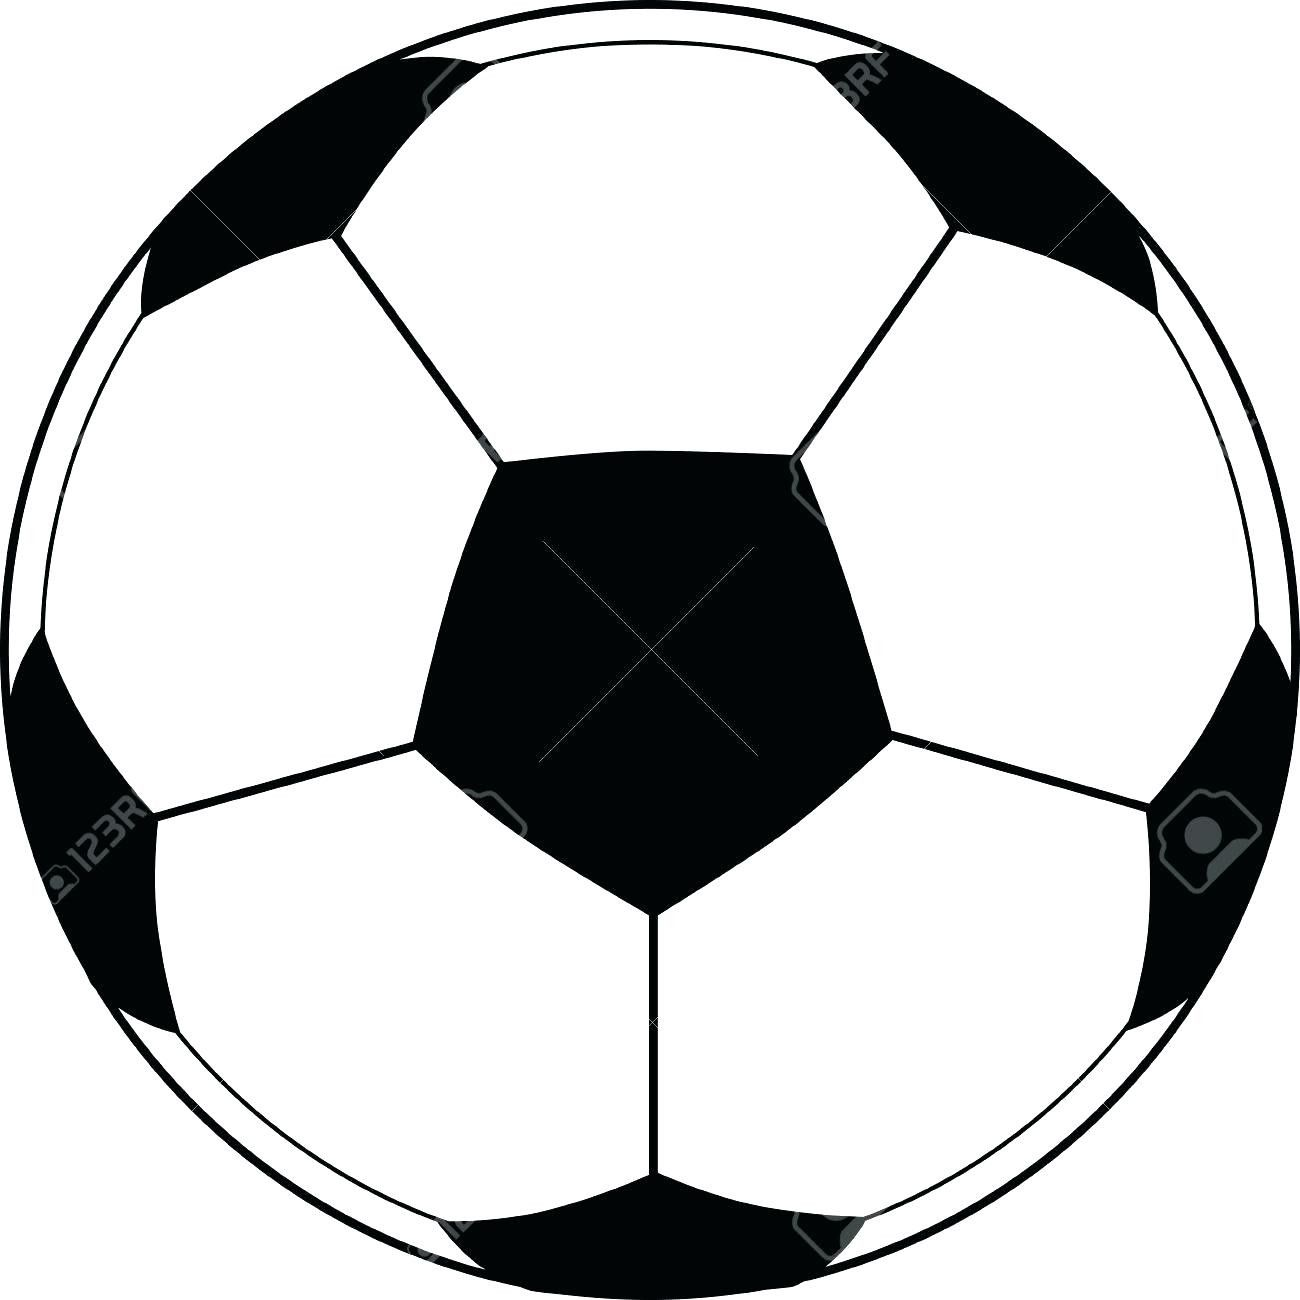 Big Soccer Ball Coloring Pages Printable Coloring Page For Kids